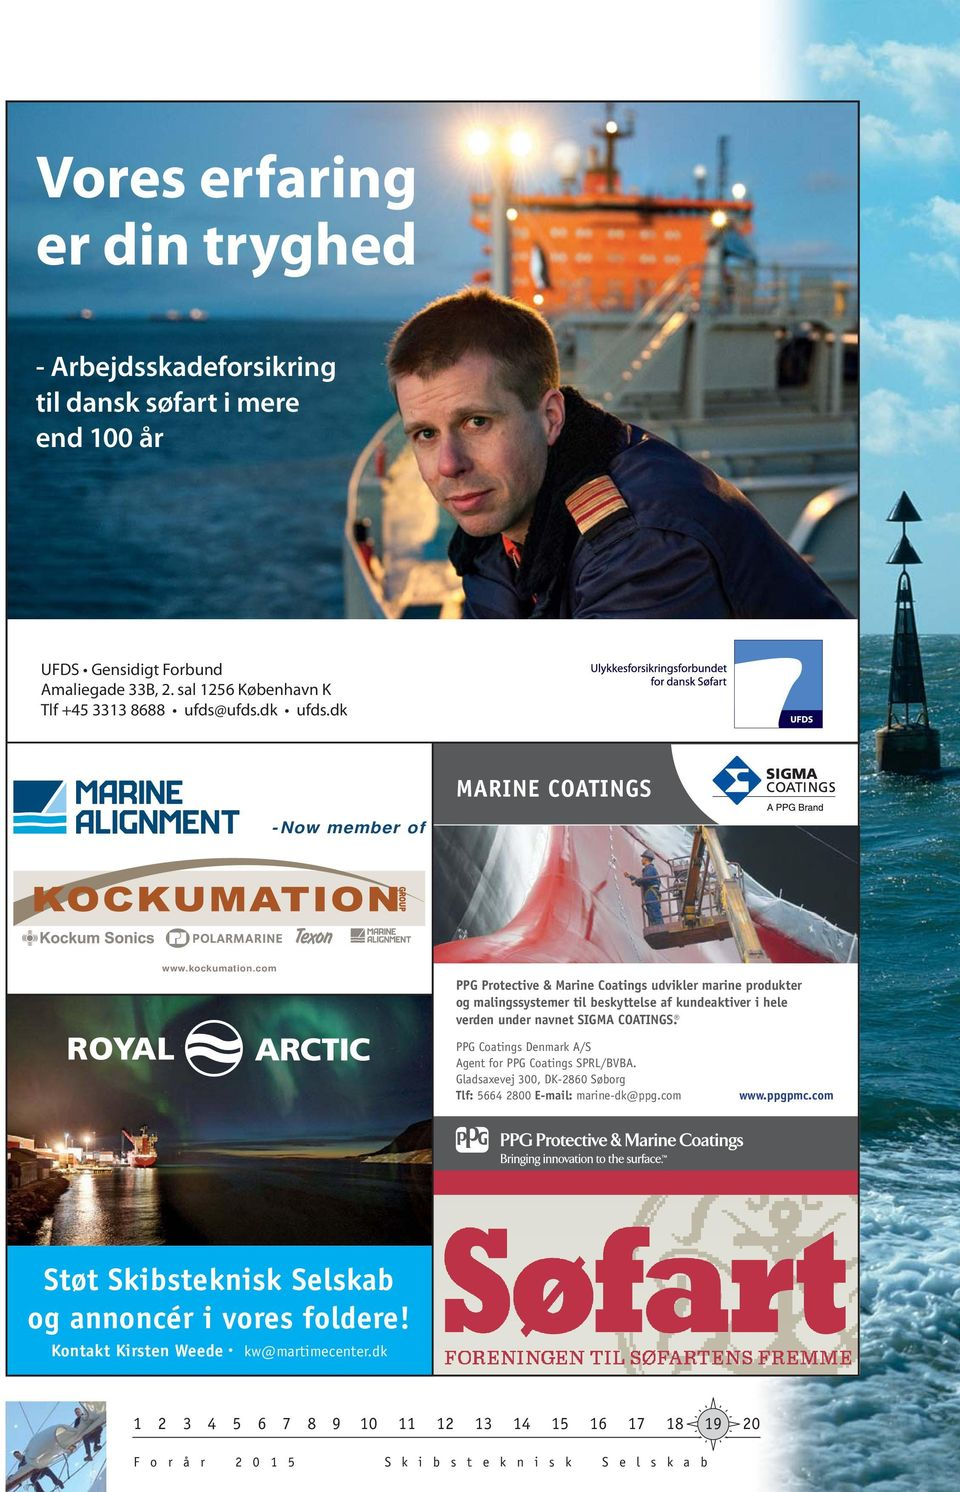 SIGMA COATINGS. PPG Coatings Denmark A/S Agent for PPG Coatings SPRL/BVBA.